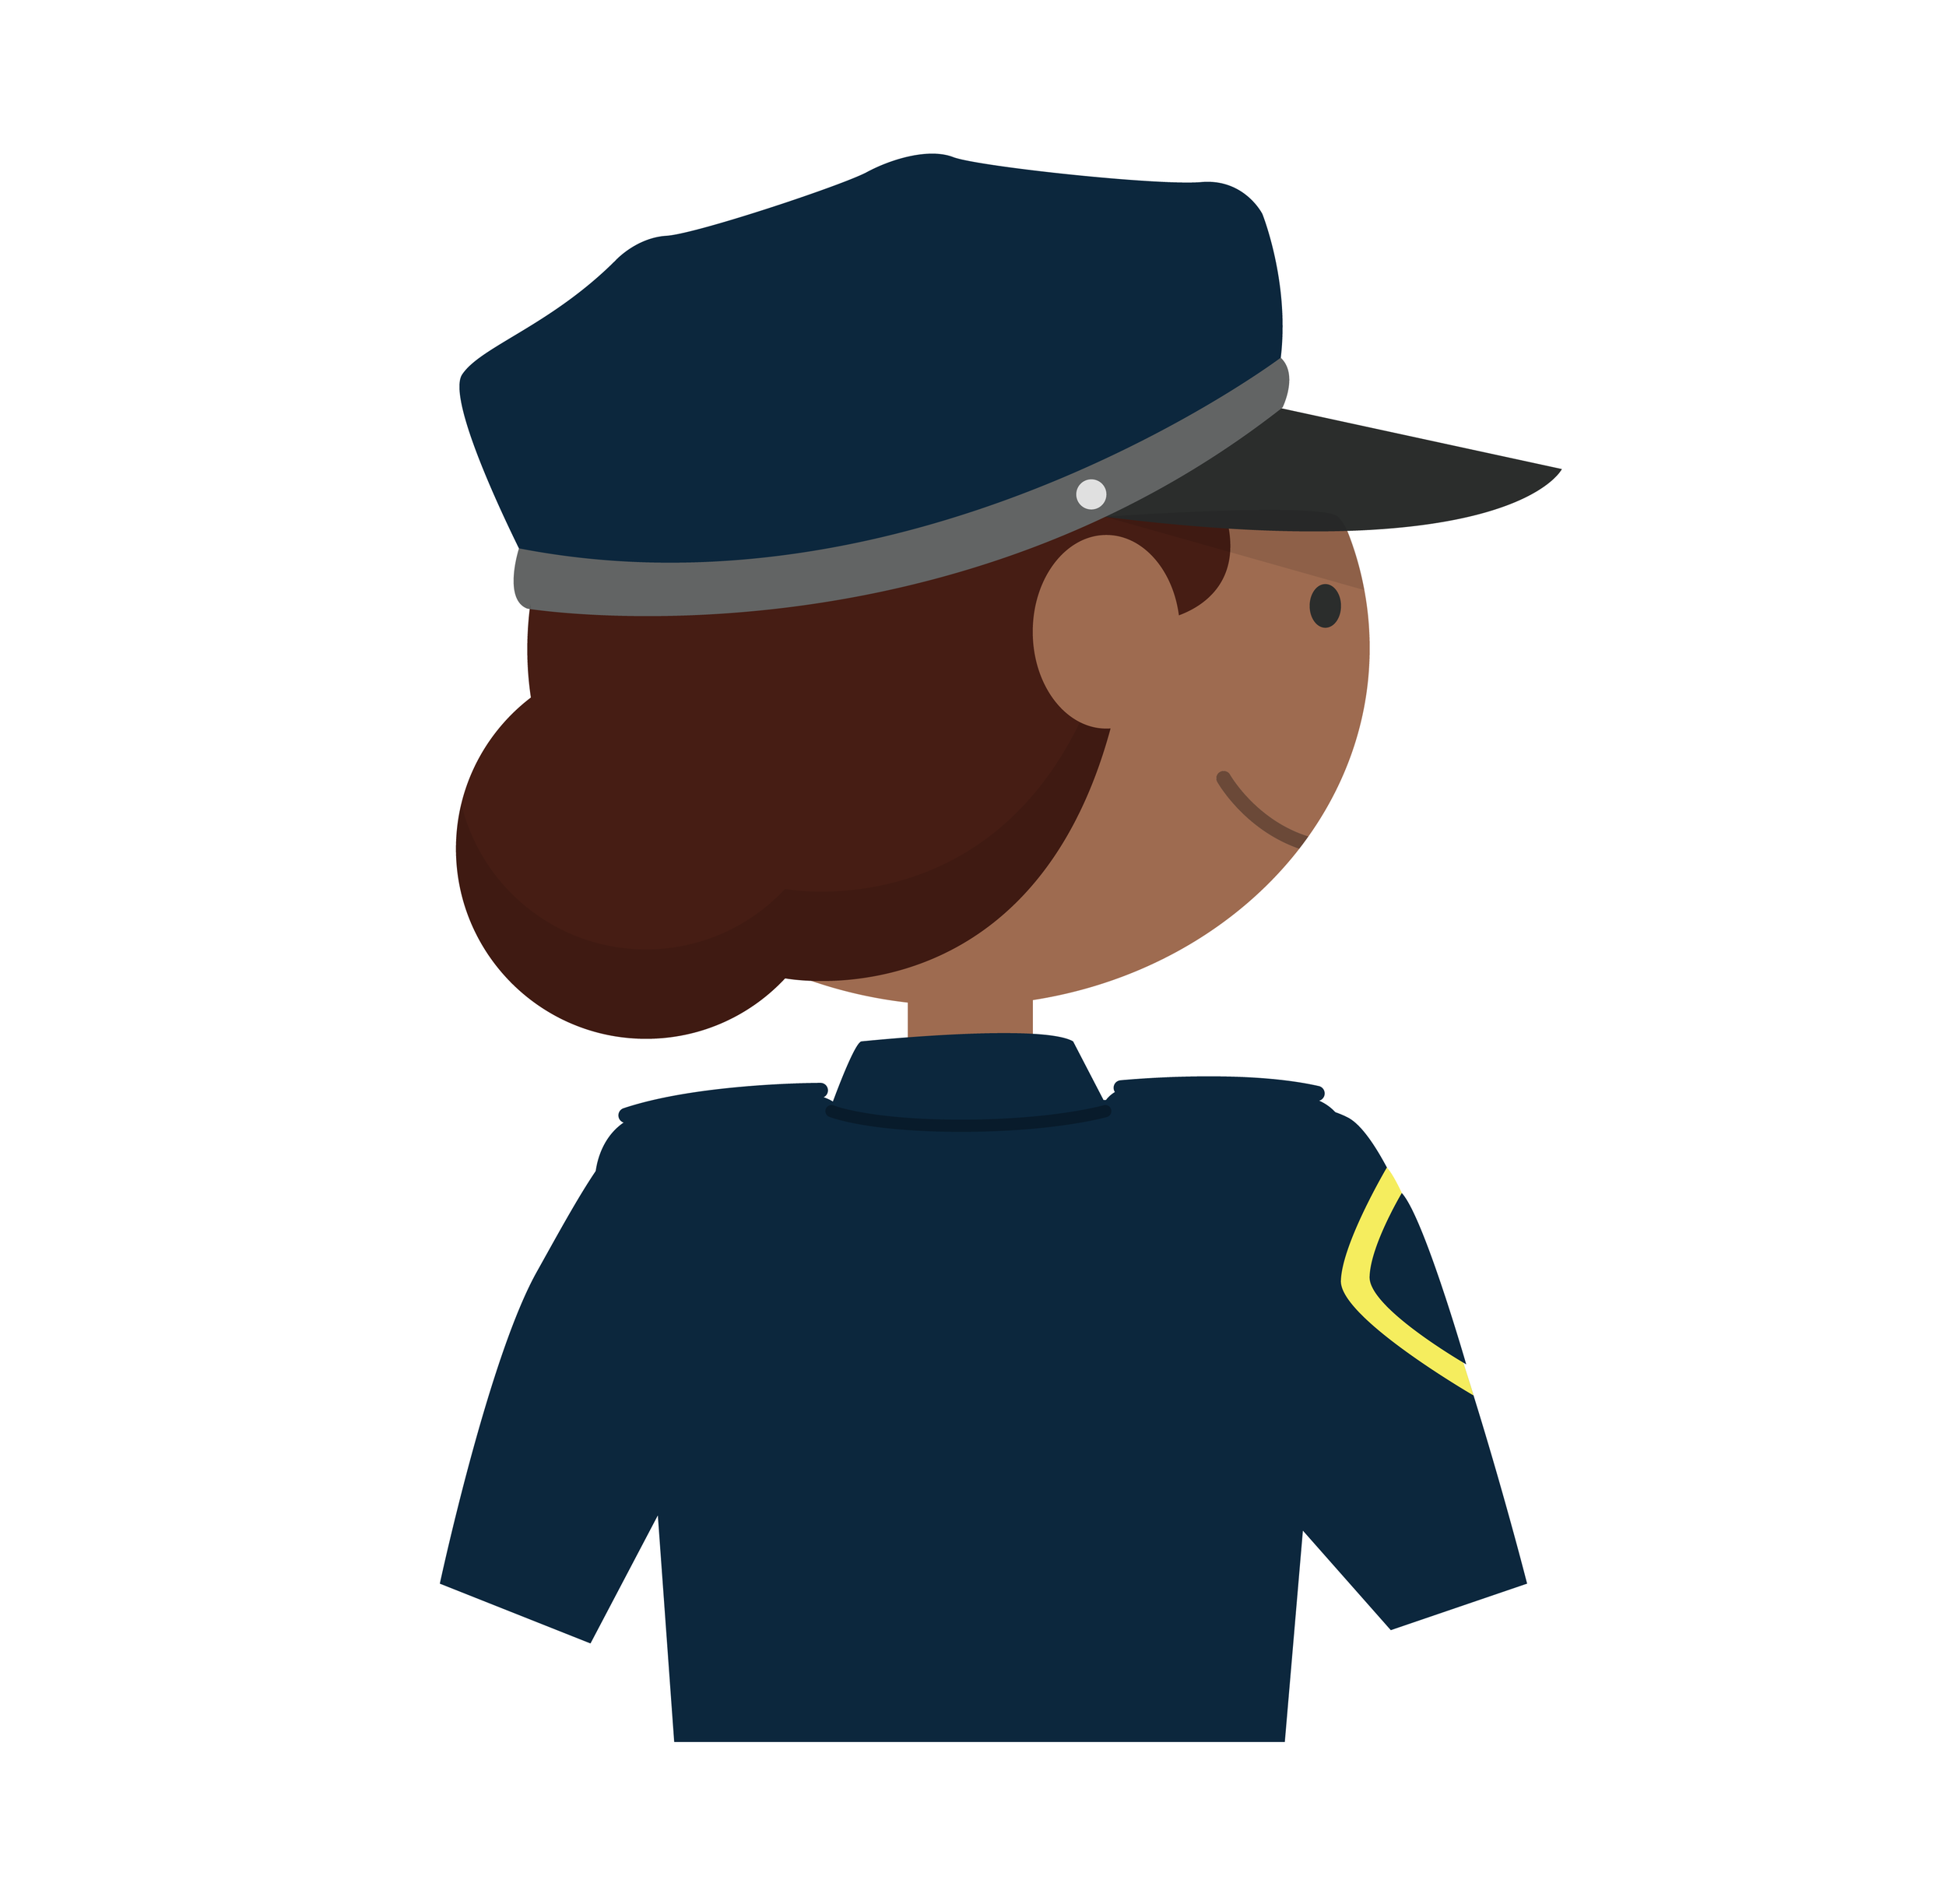 Police_Officer-01.png